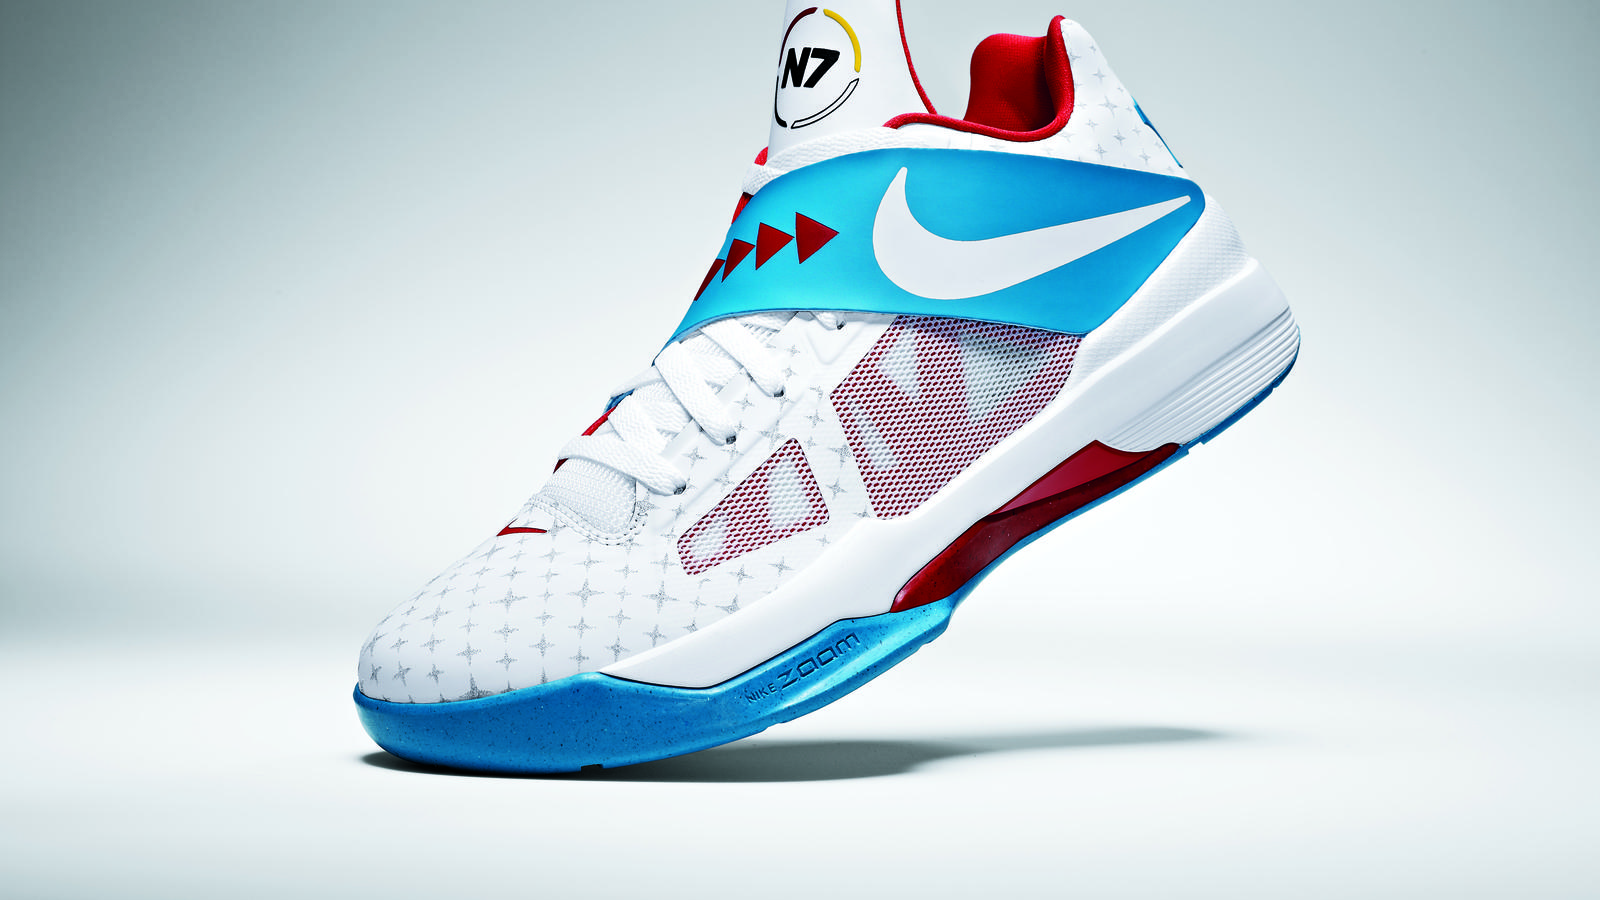 Kevin Durant Unveils the New Nike N7